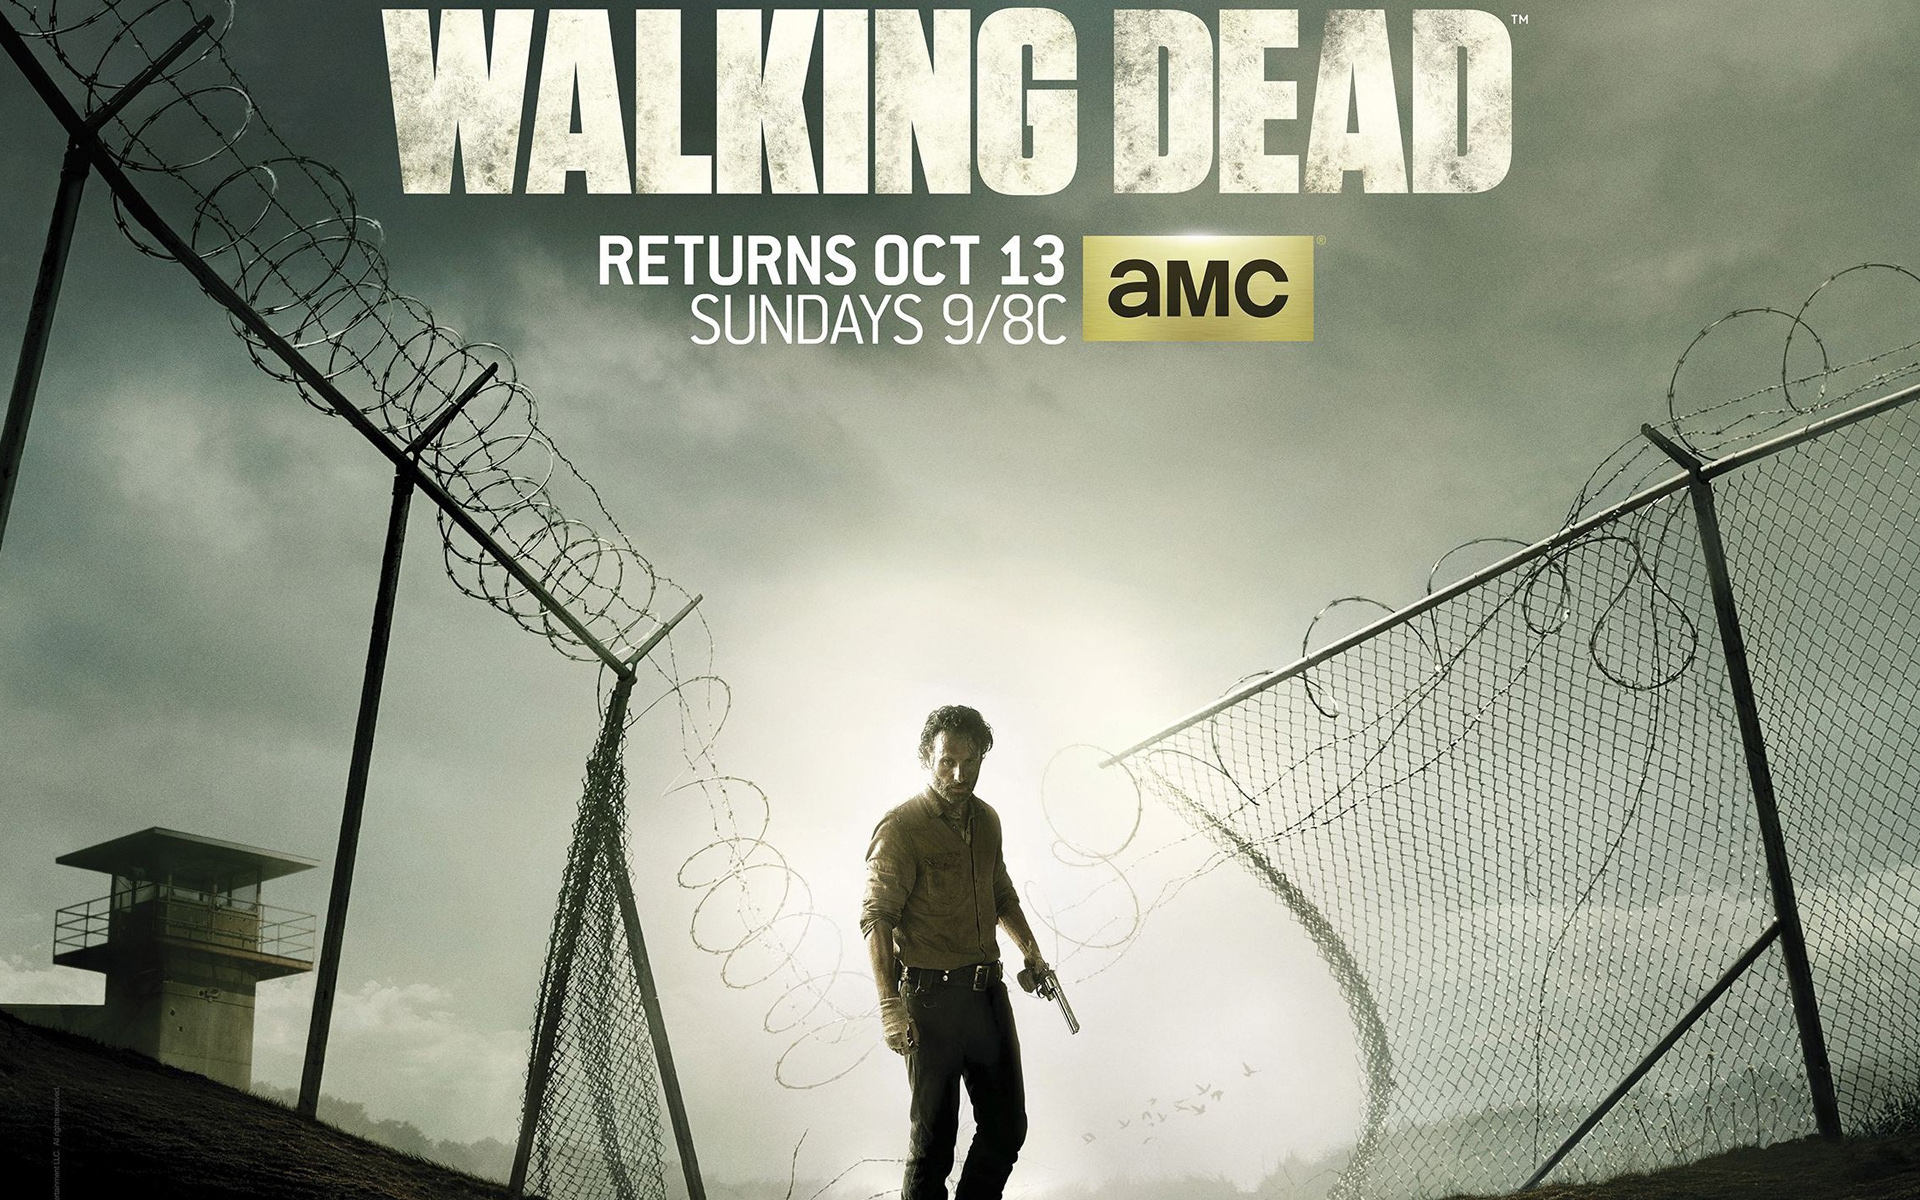 the walking dead 2013 zombie amc movie Shane Walsh poster film 1920x1200